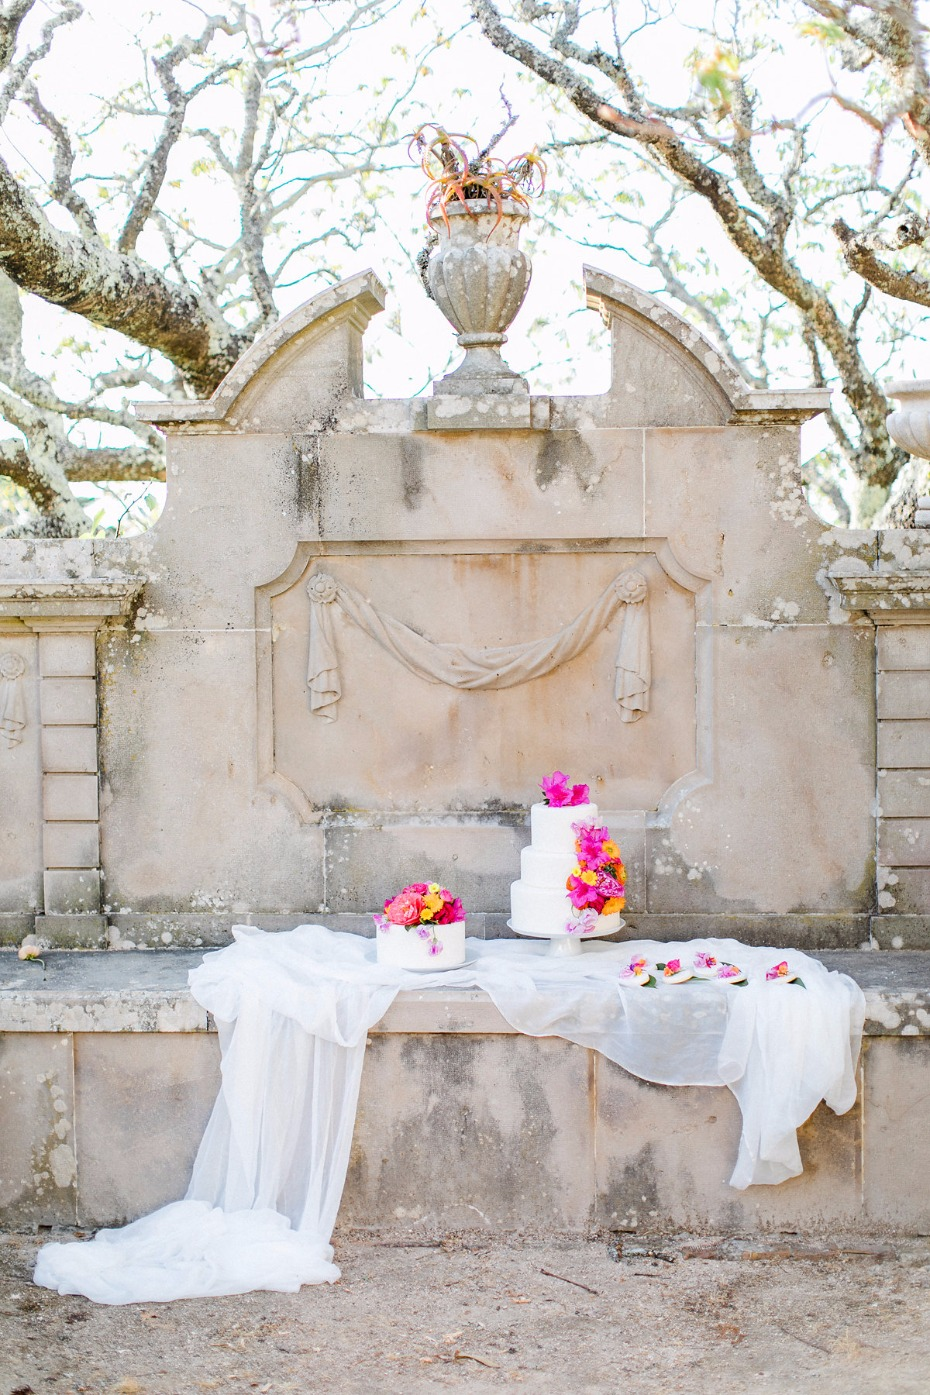 romantic outdoor wedding cake display